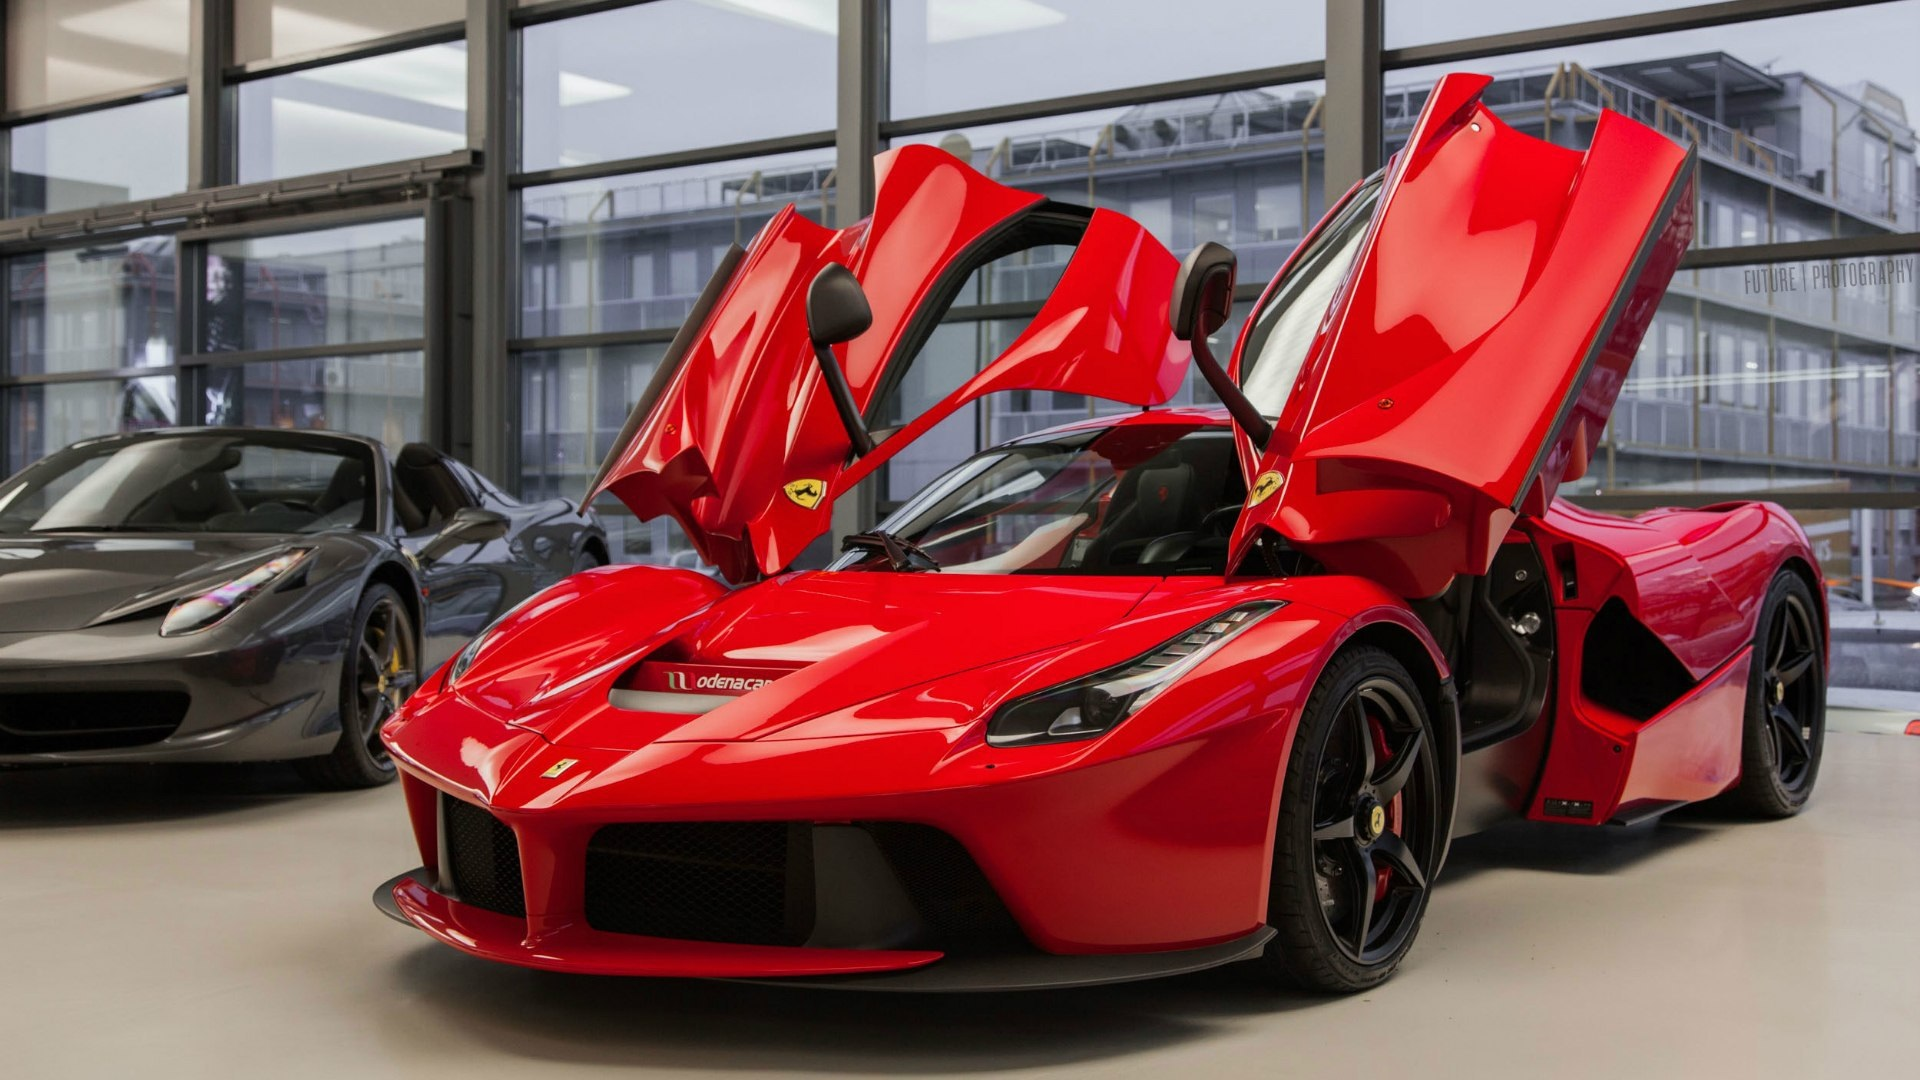 2017 Ferrari 458 Price >> Ferrari LaFerrari Showcase Full HD Wallpaper